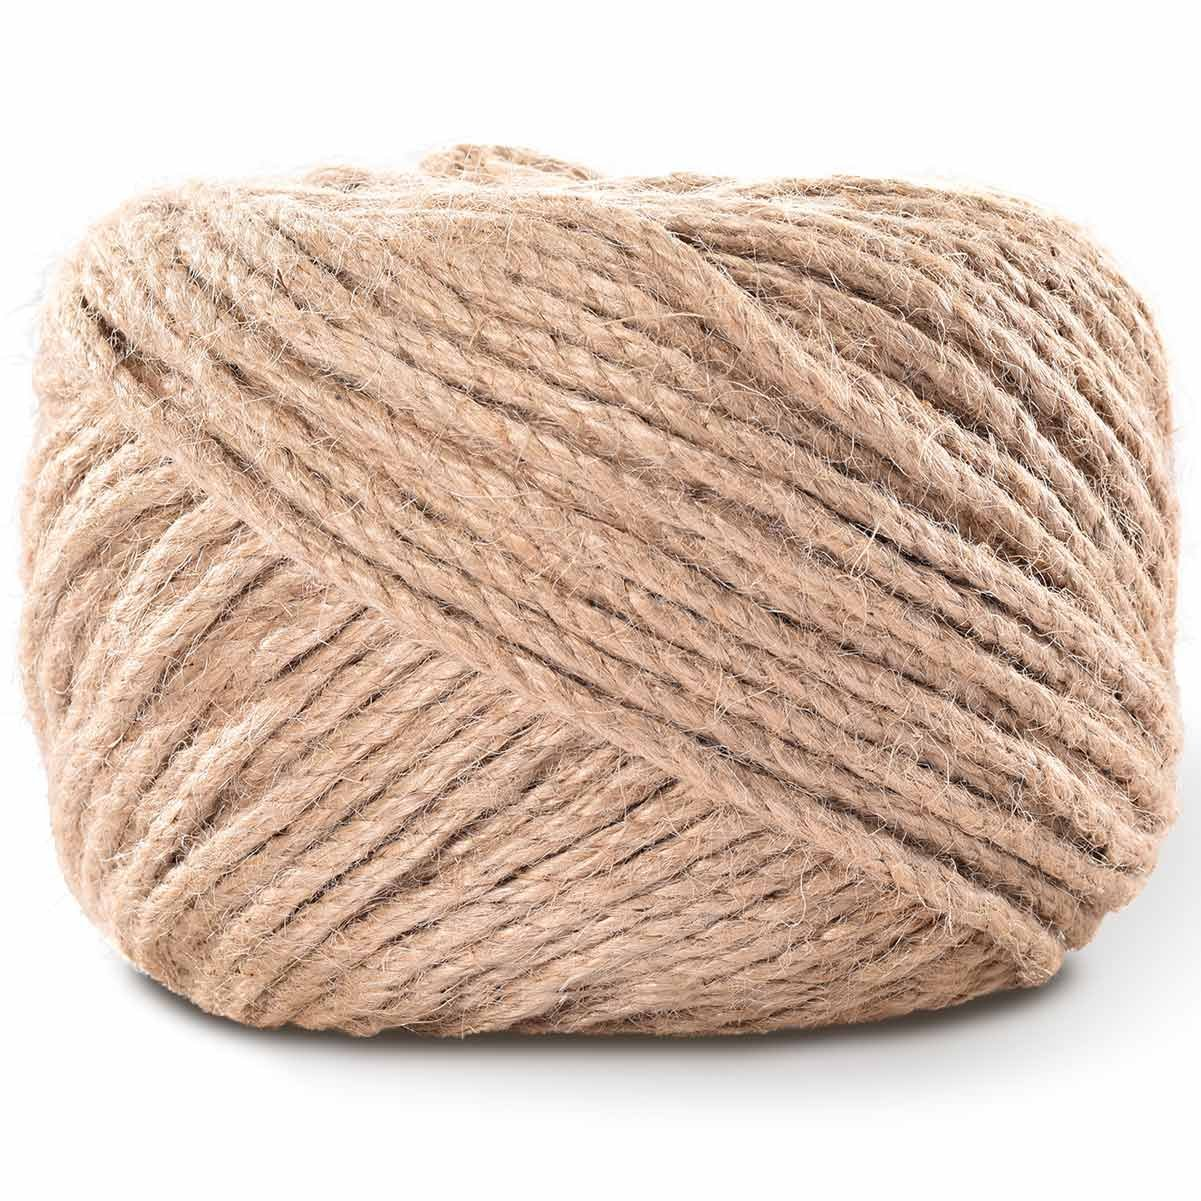 LOOMY 4mm 300 Feet Natural Jute Twine Arts and Crafts Jute Rope Industrial Packing Twine for DIY Crafts,Gardening Applications,Nursery Construction,Rustic Brown